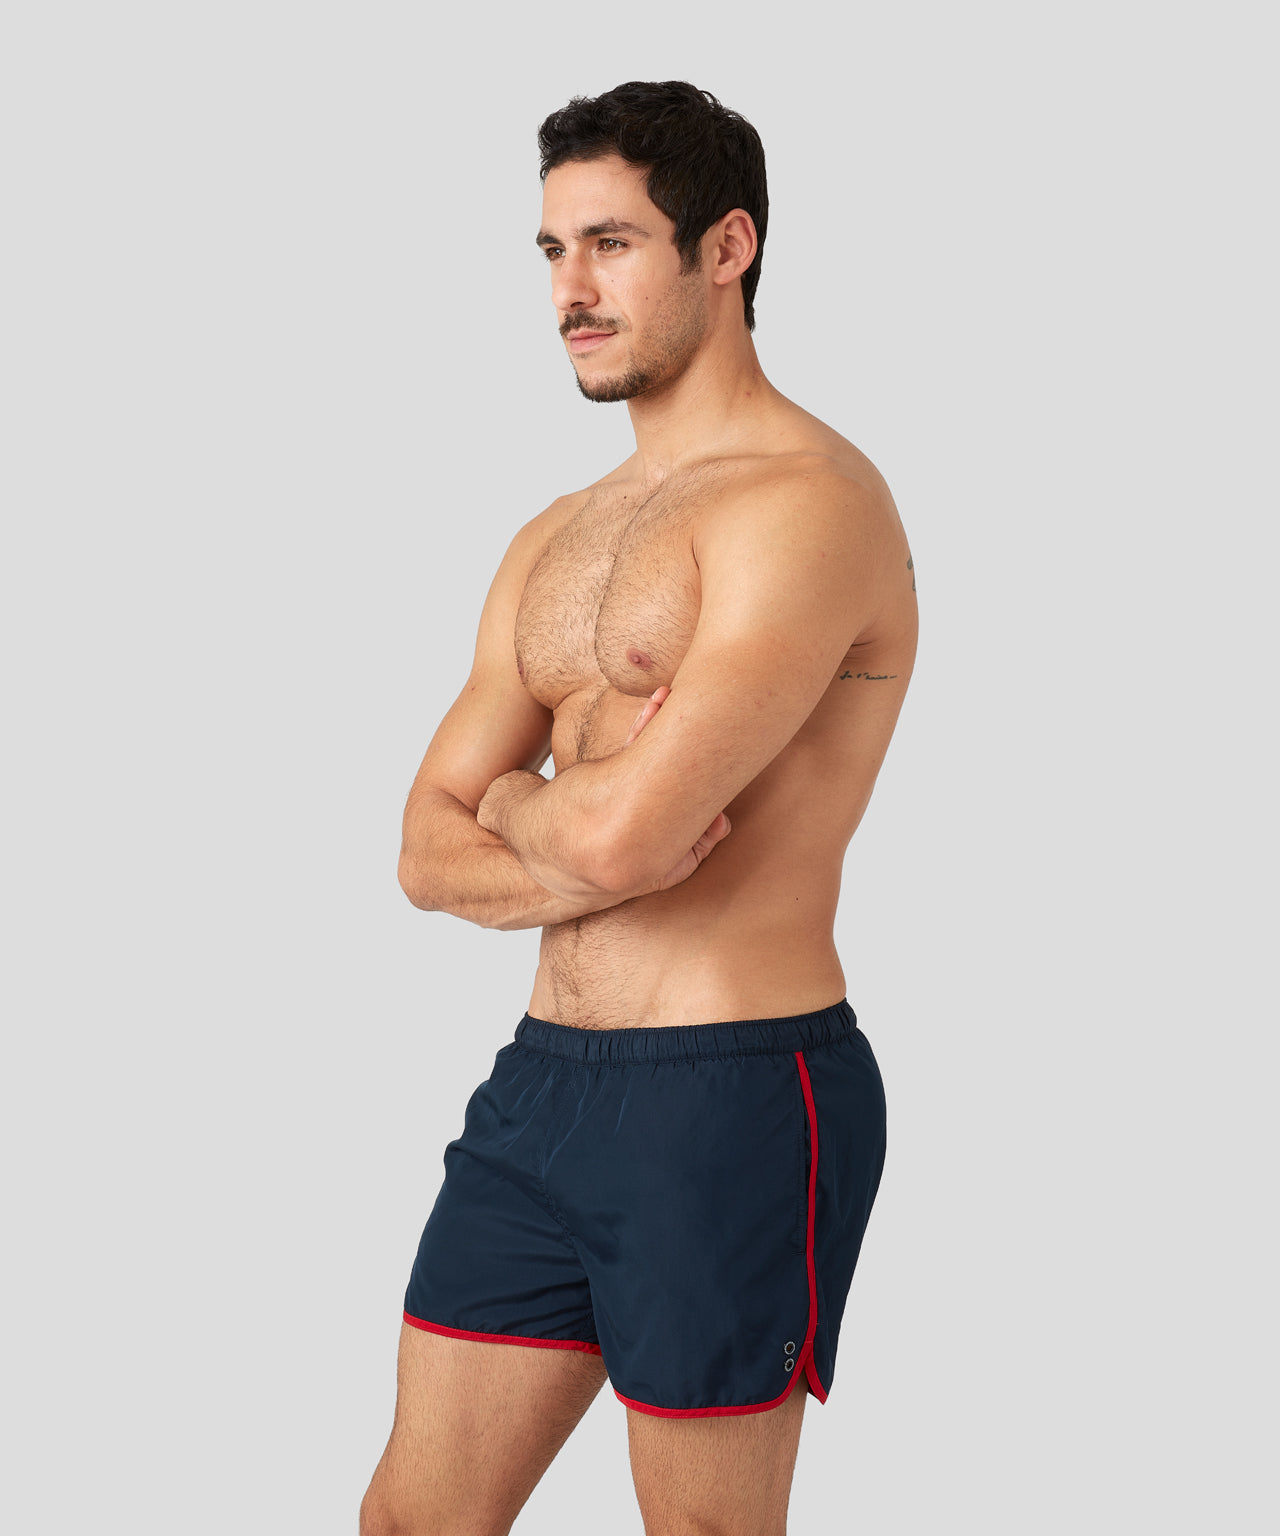 Marathon Swim Shorts - navy / red